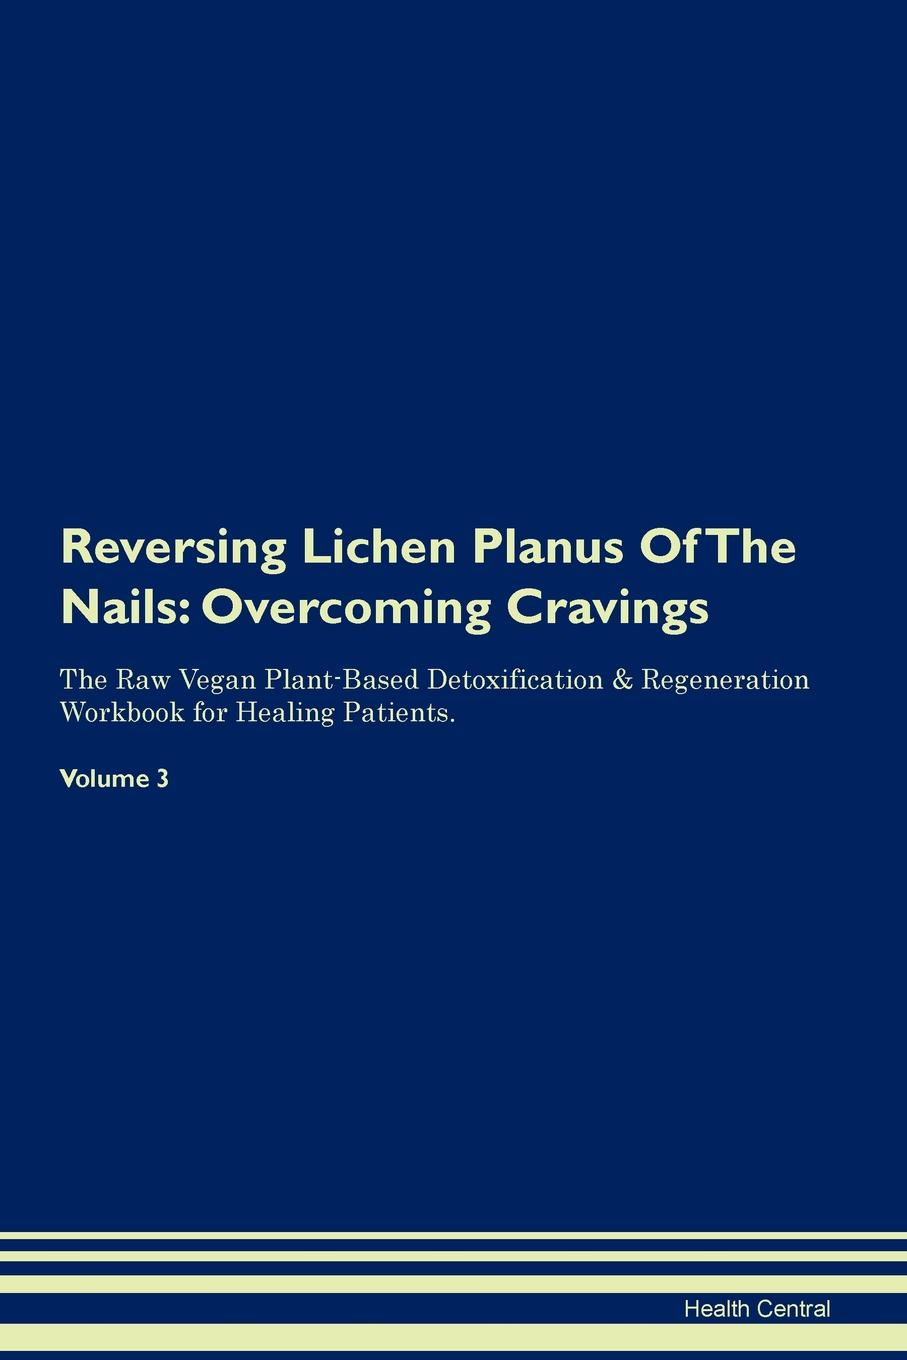 Фото - Health Central Reversing Lichen Planus Of The Nails. Overcoming Cravings The Raw Vegan Plant-Based Detoxification & Regeneration Workbook for Healing Patients. Volume 3 health central reversing lichen sclerosus overcoming cravings the raw vegan plant based detoxification regeneration workbook for healing patients volume 3